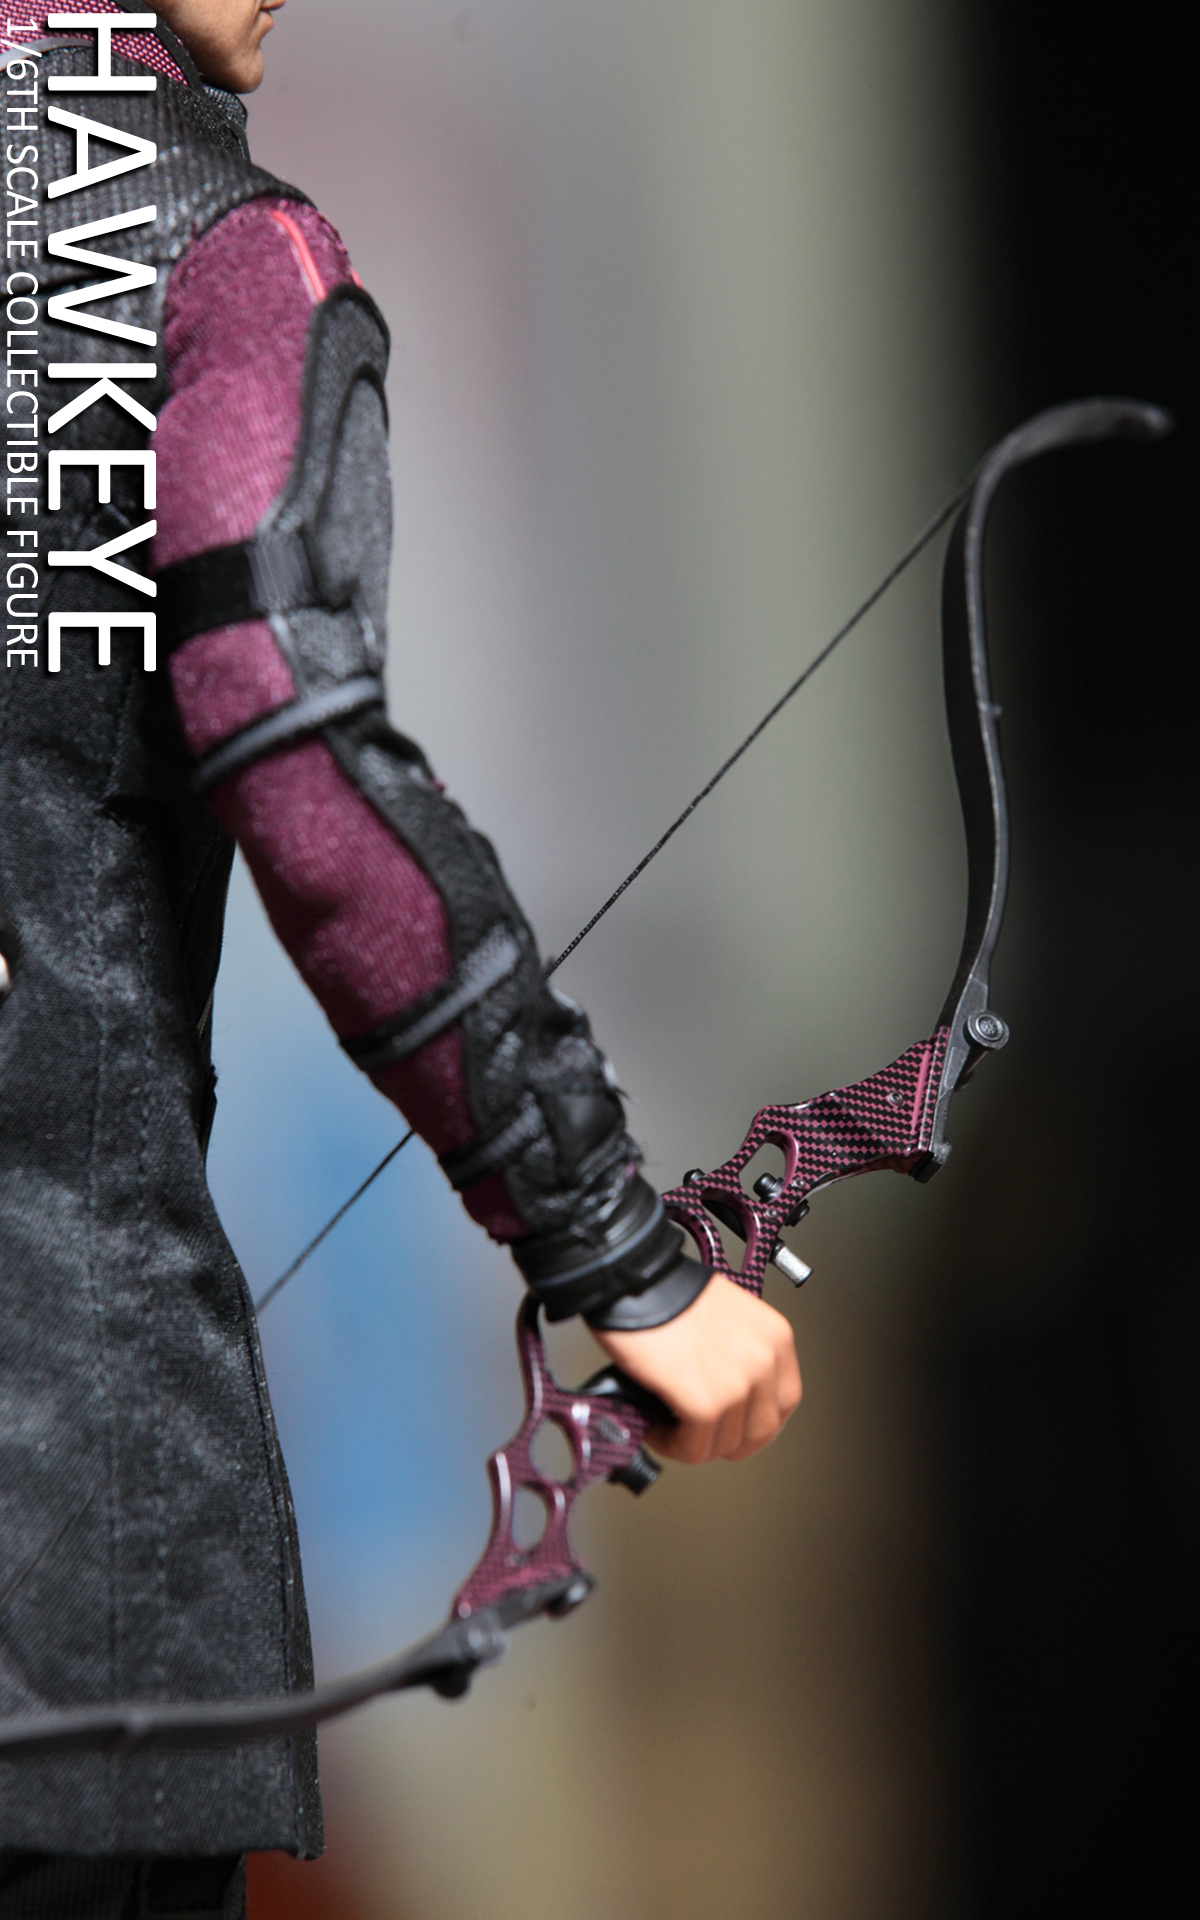 hottoys-avengers-age-of-ultron-hawkeye-picture13